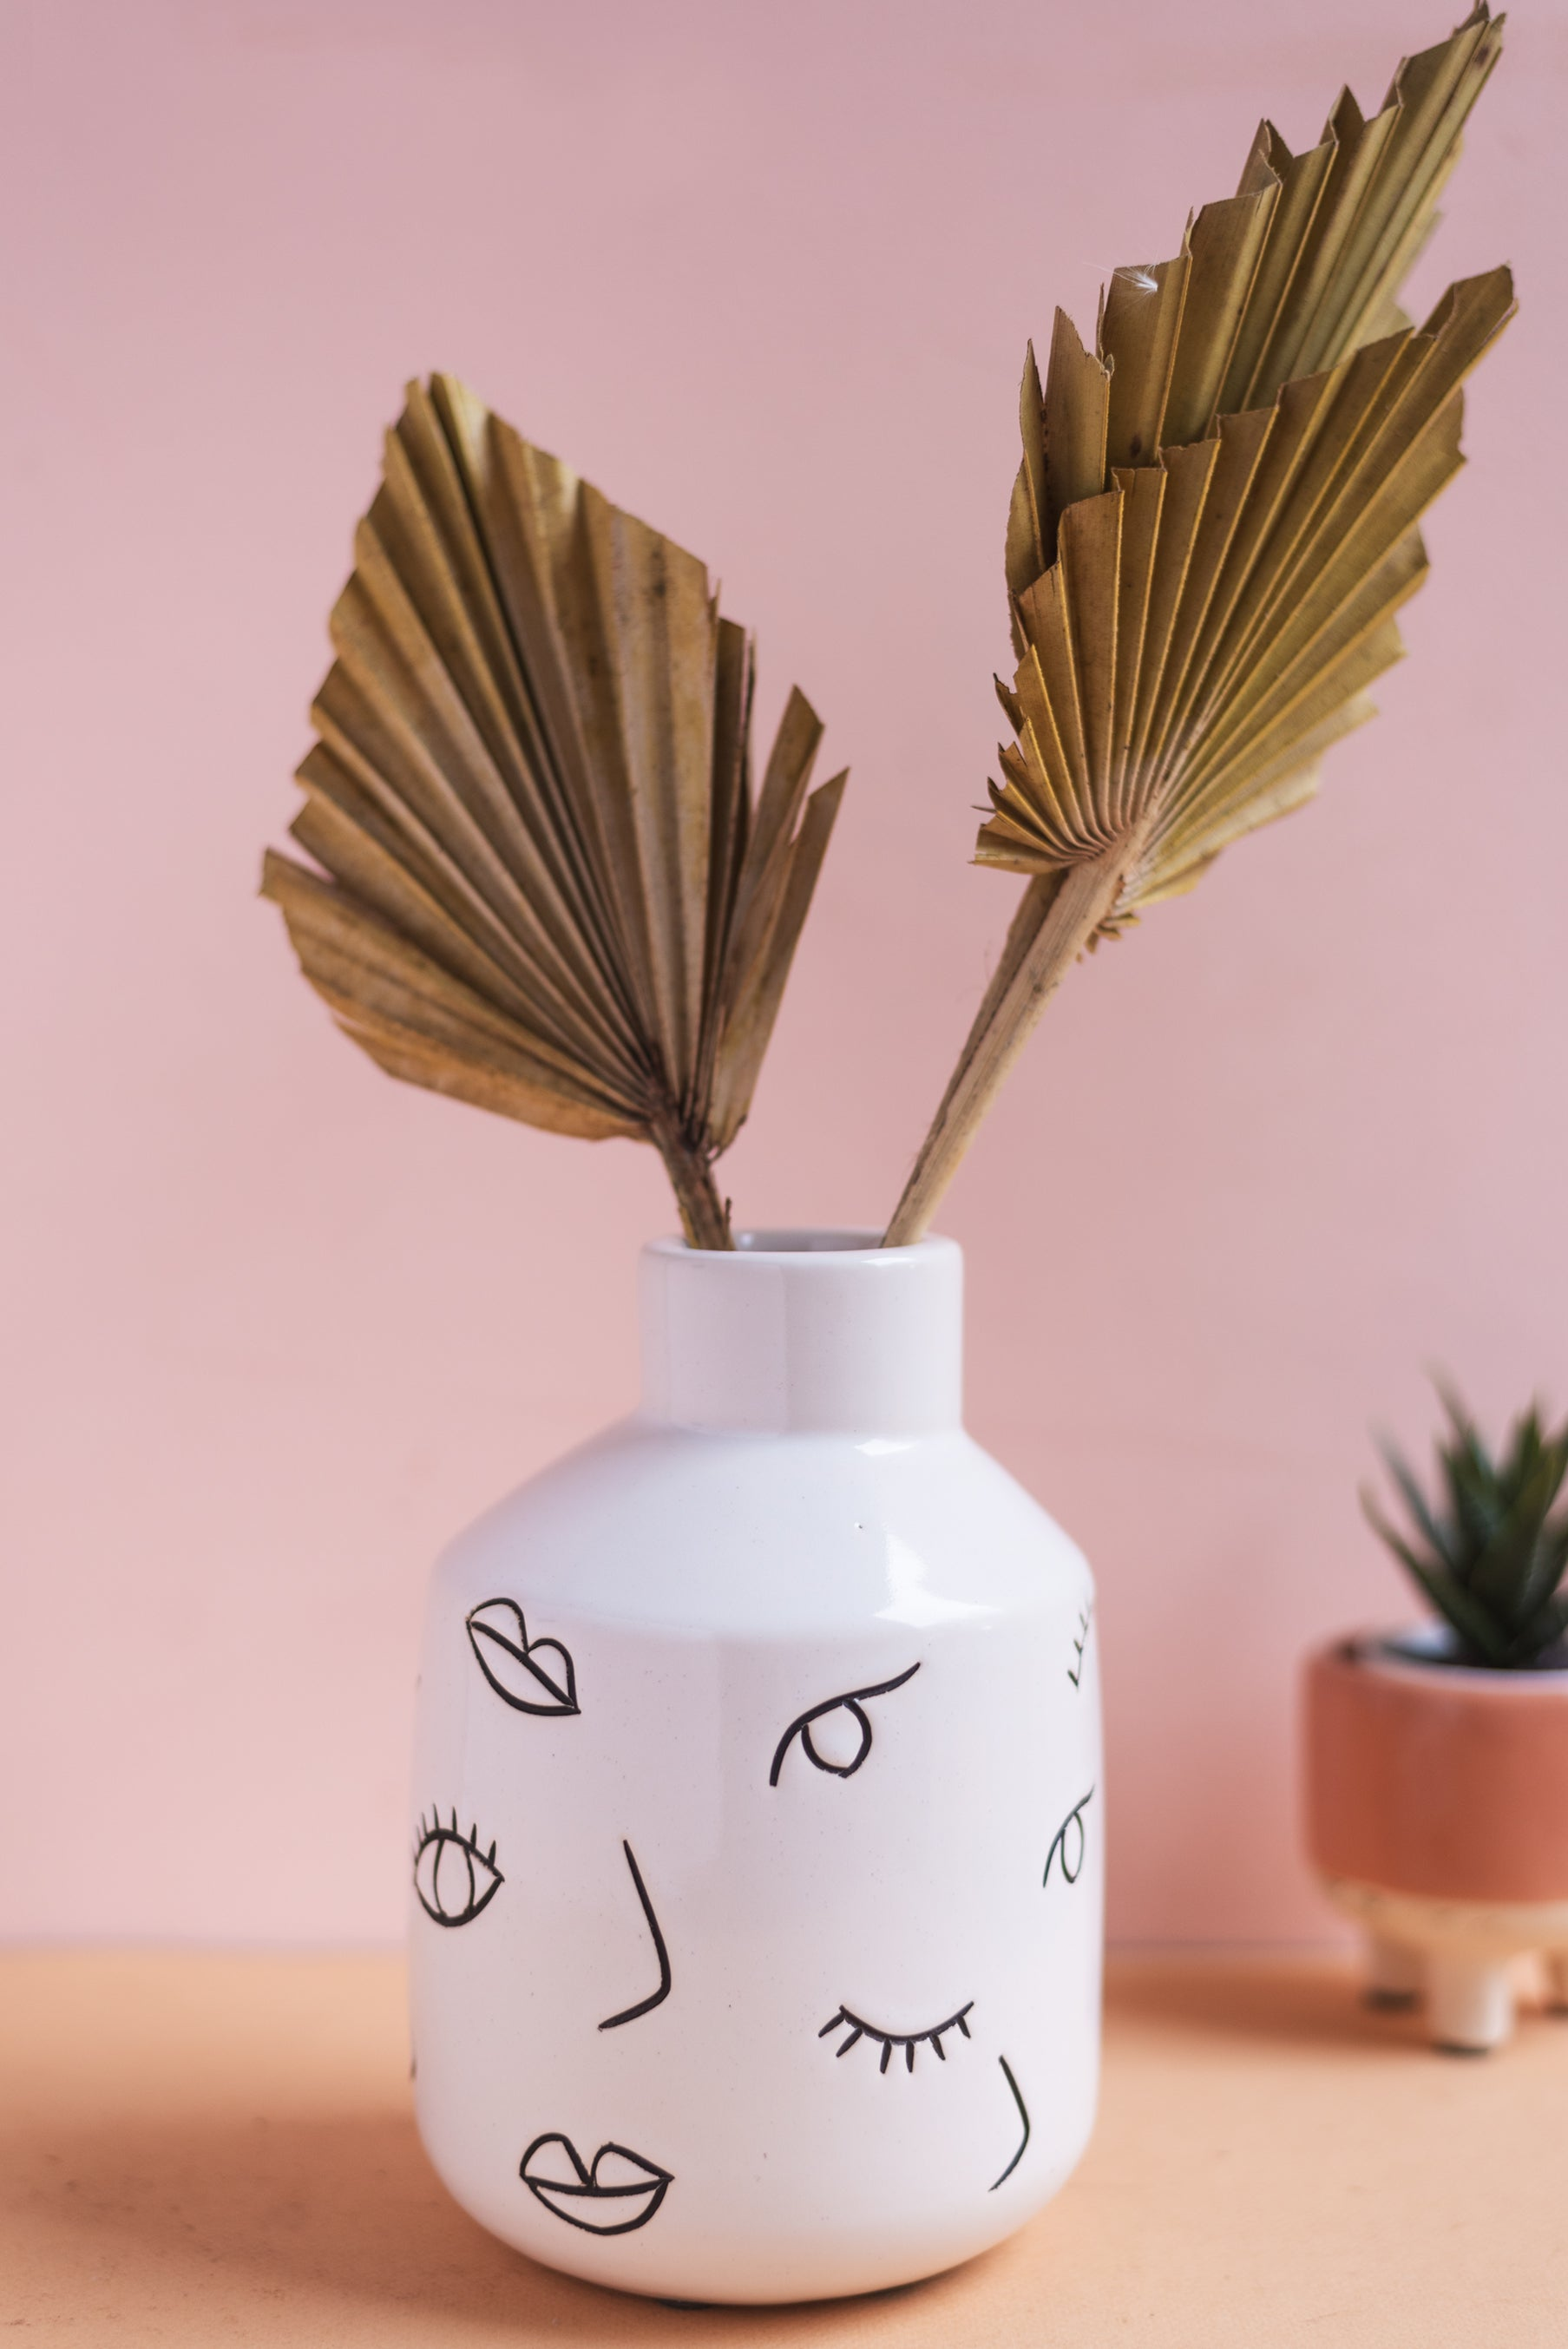 Imperfect Abstract Face Earthenware Vase